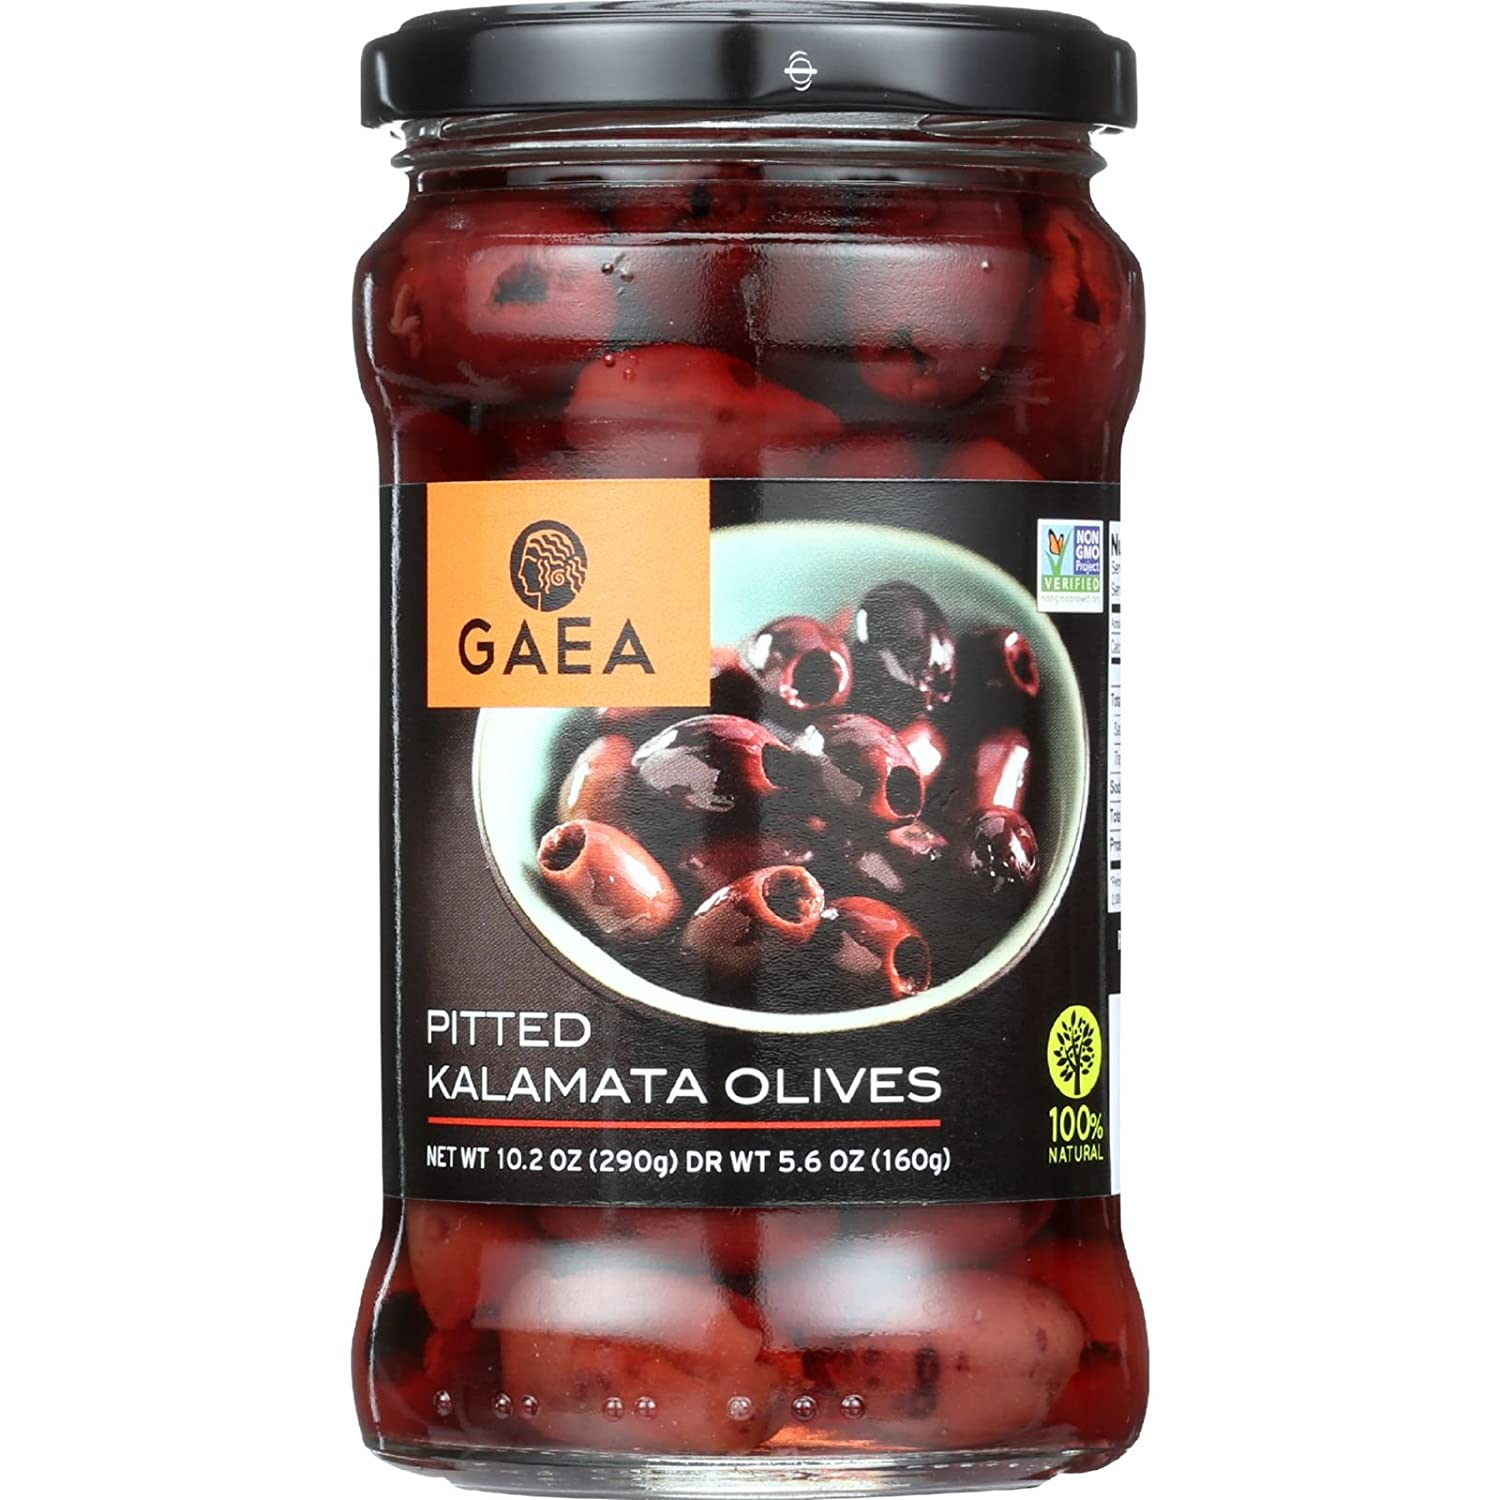 25% OFF Gaea Pitted Greek Kalamata Olives - 10.2 oz Jar - Non-GMO Preservative-Free and Low Sodium Healthy Snack